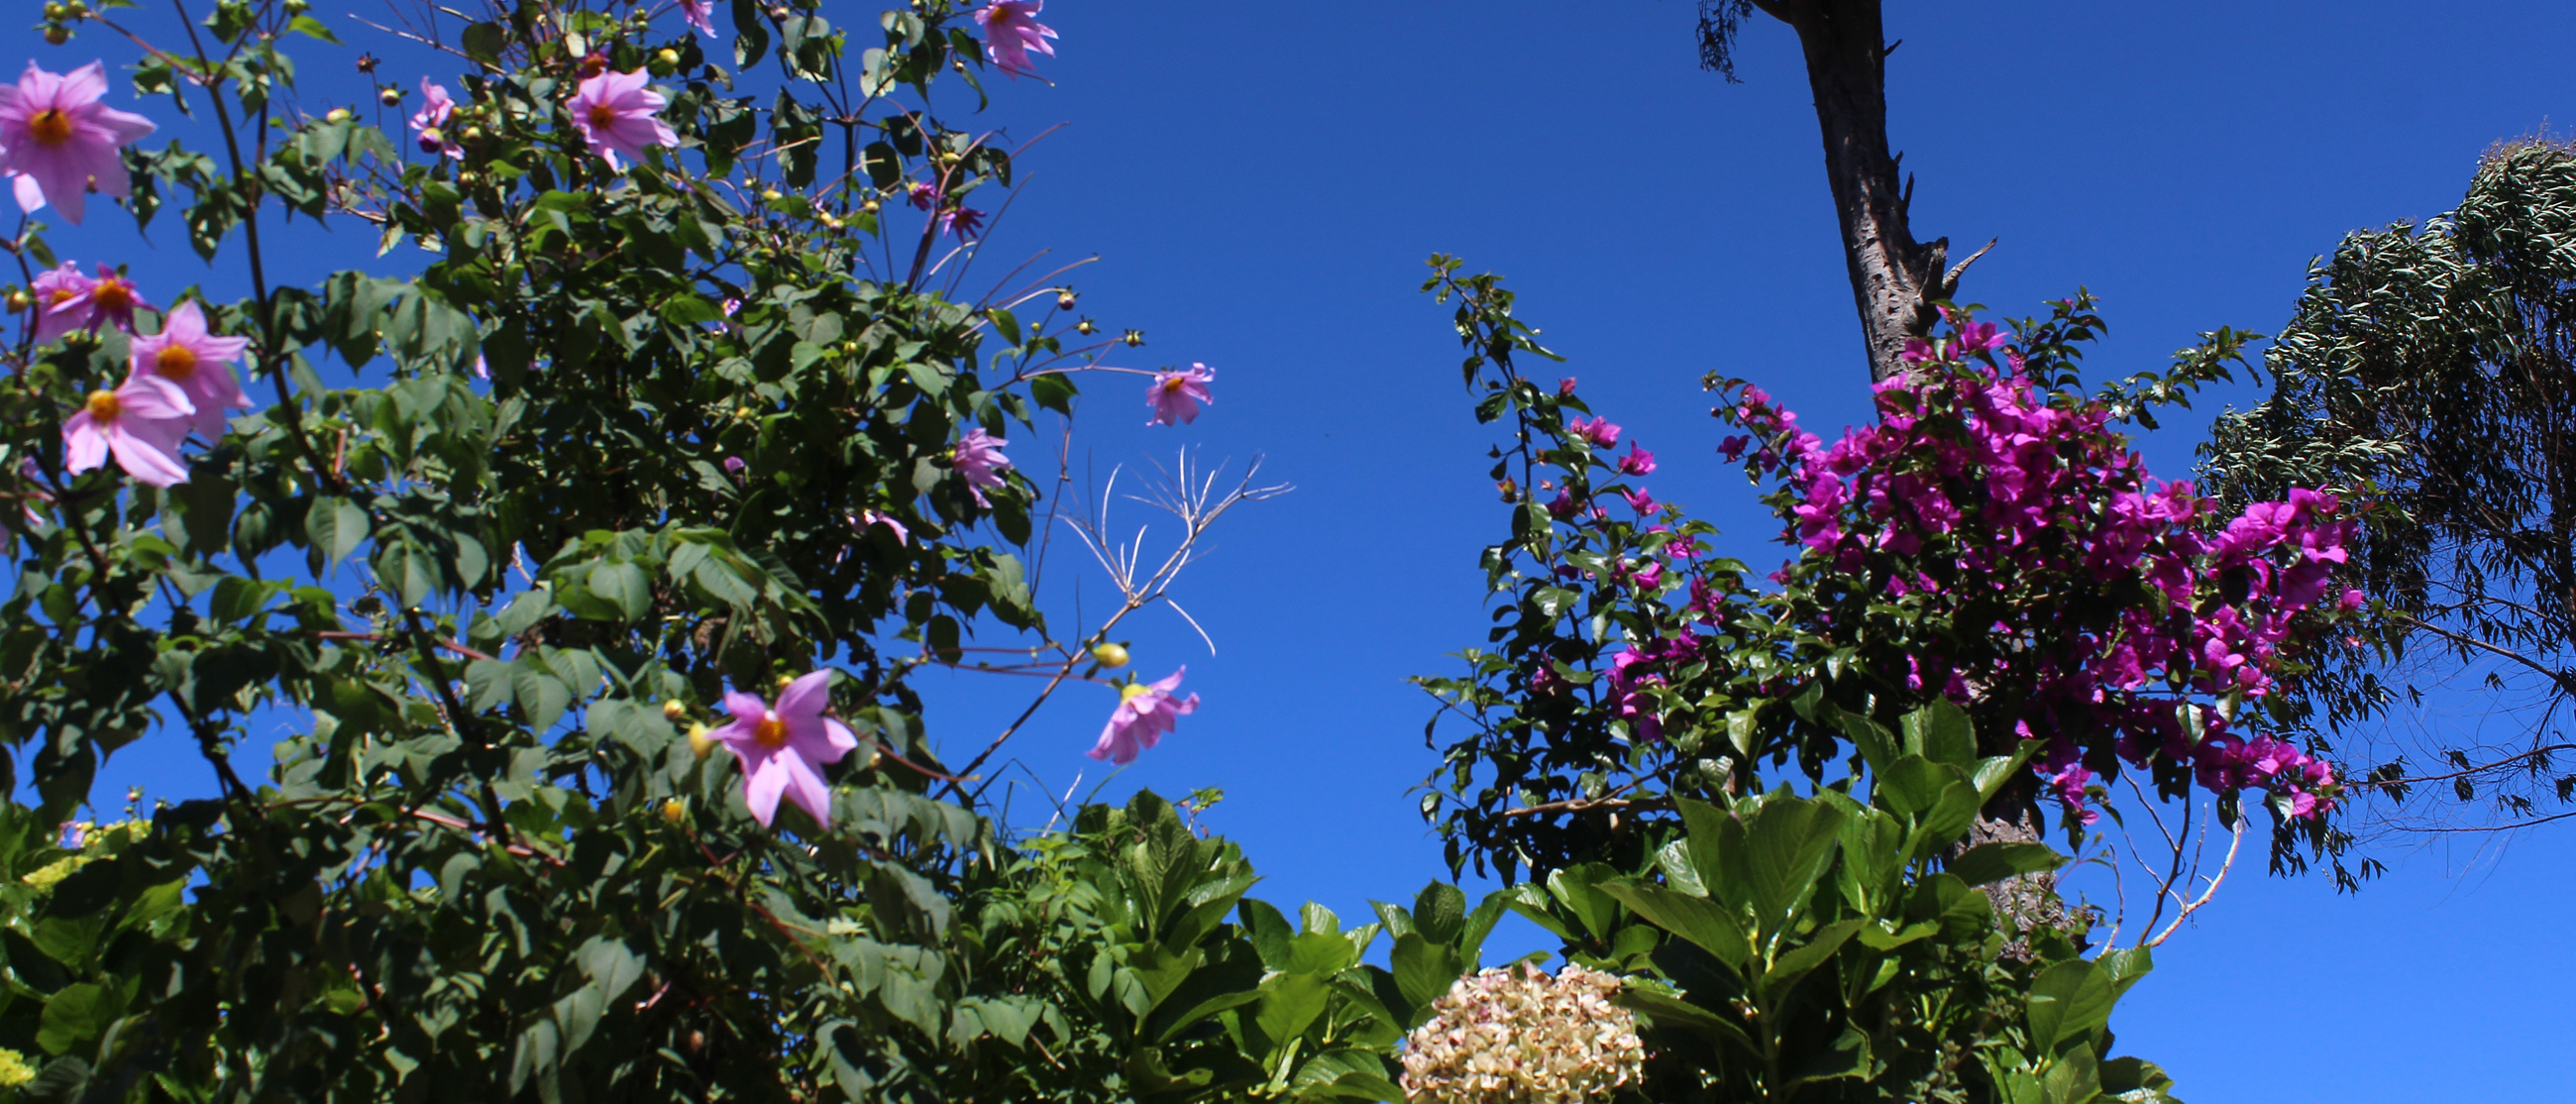 Magenta flowers against a blue sky